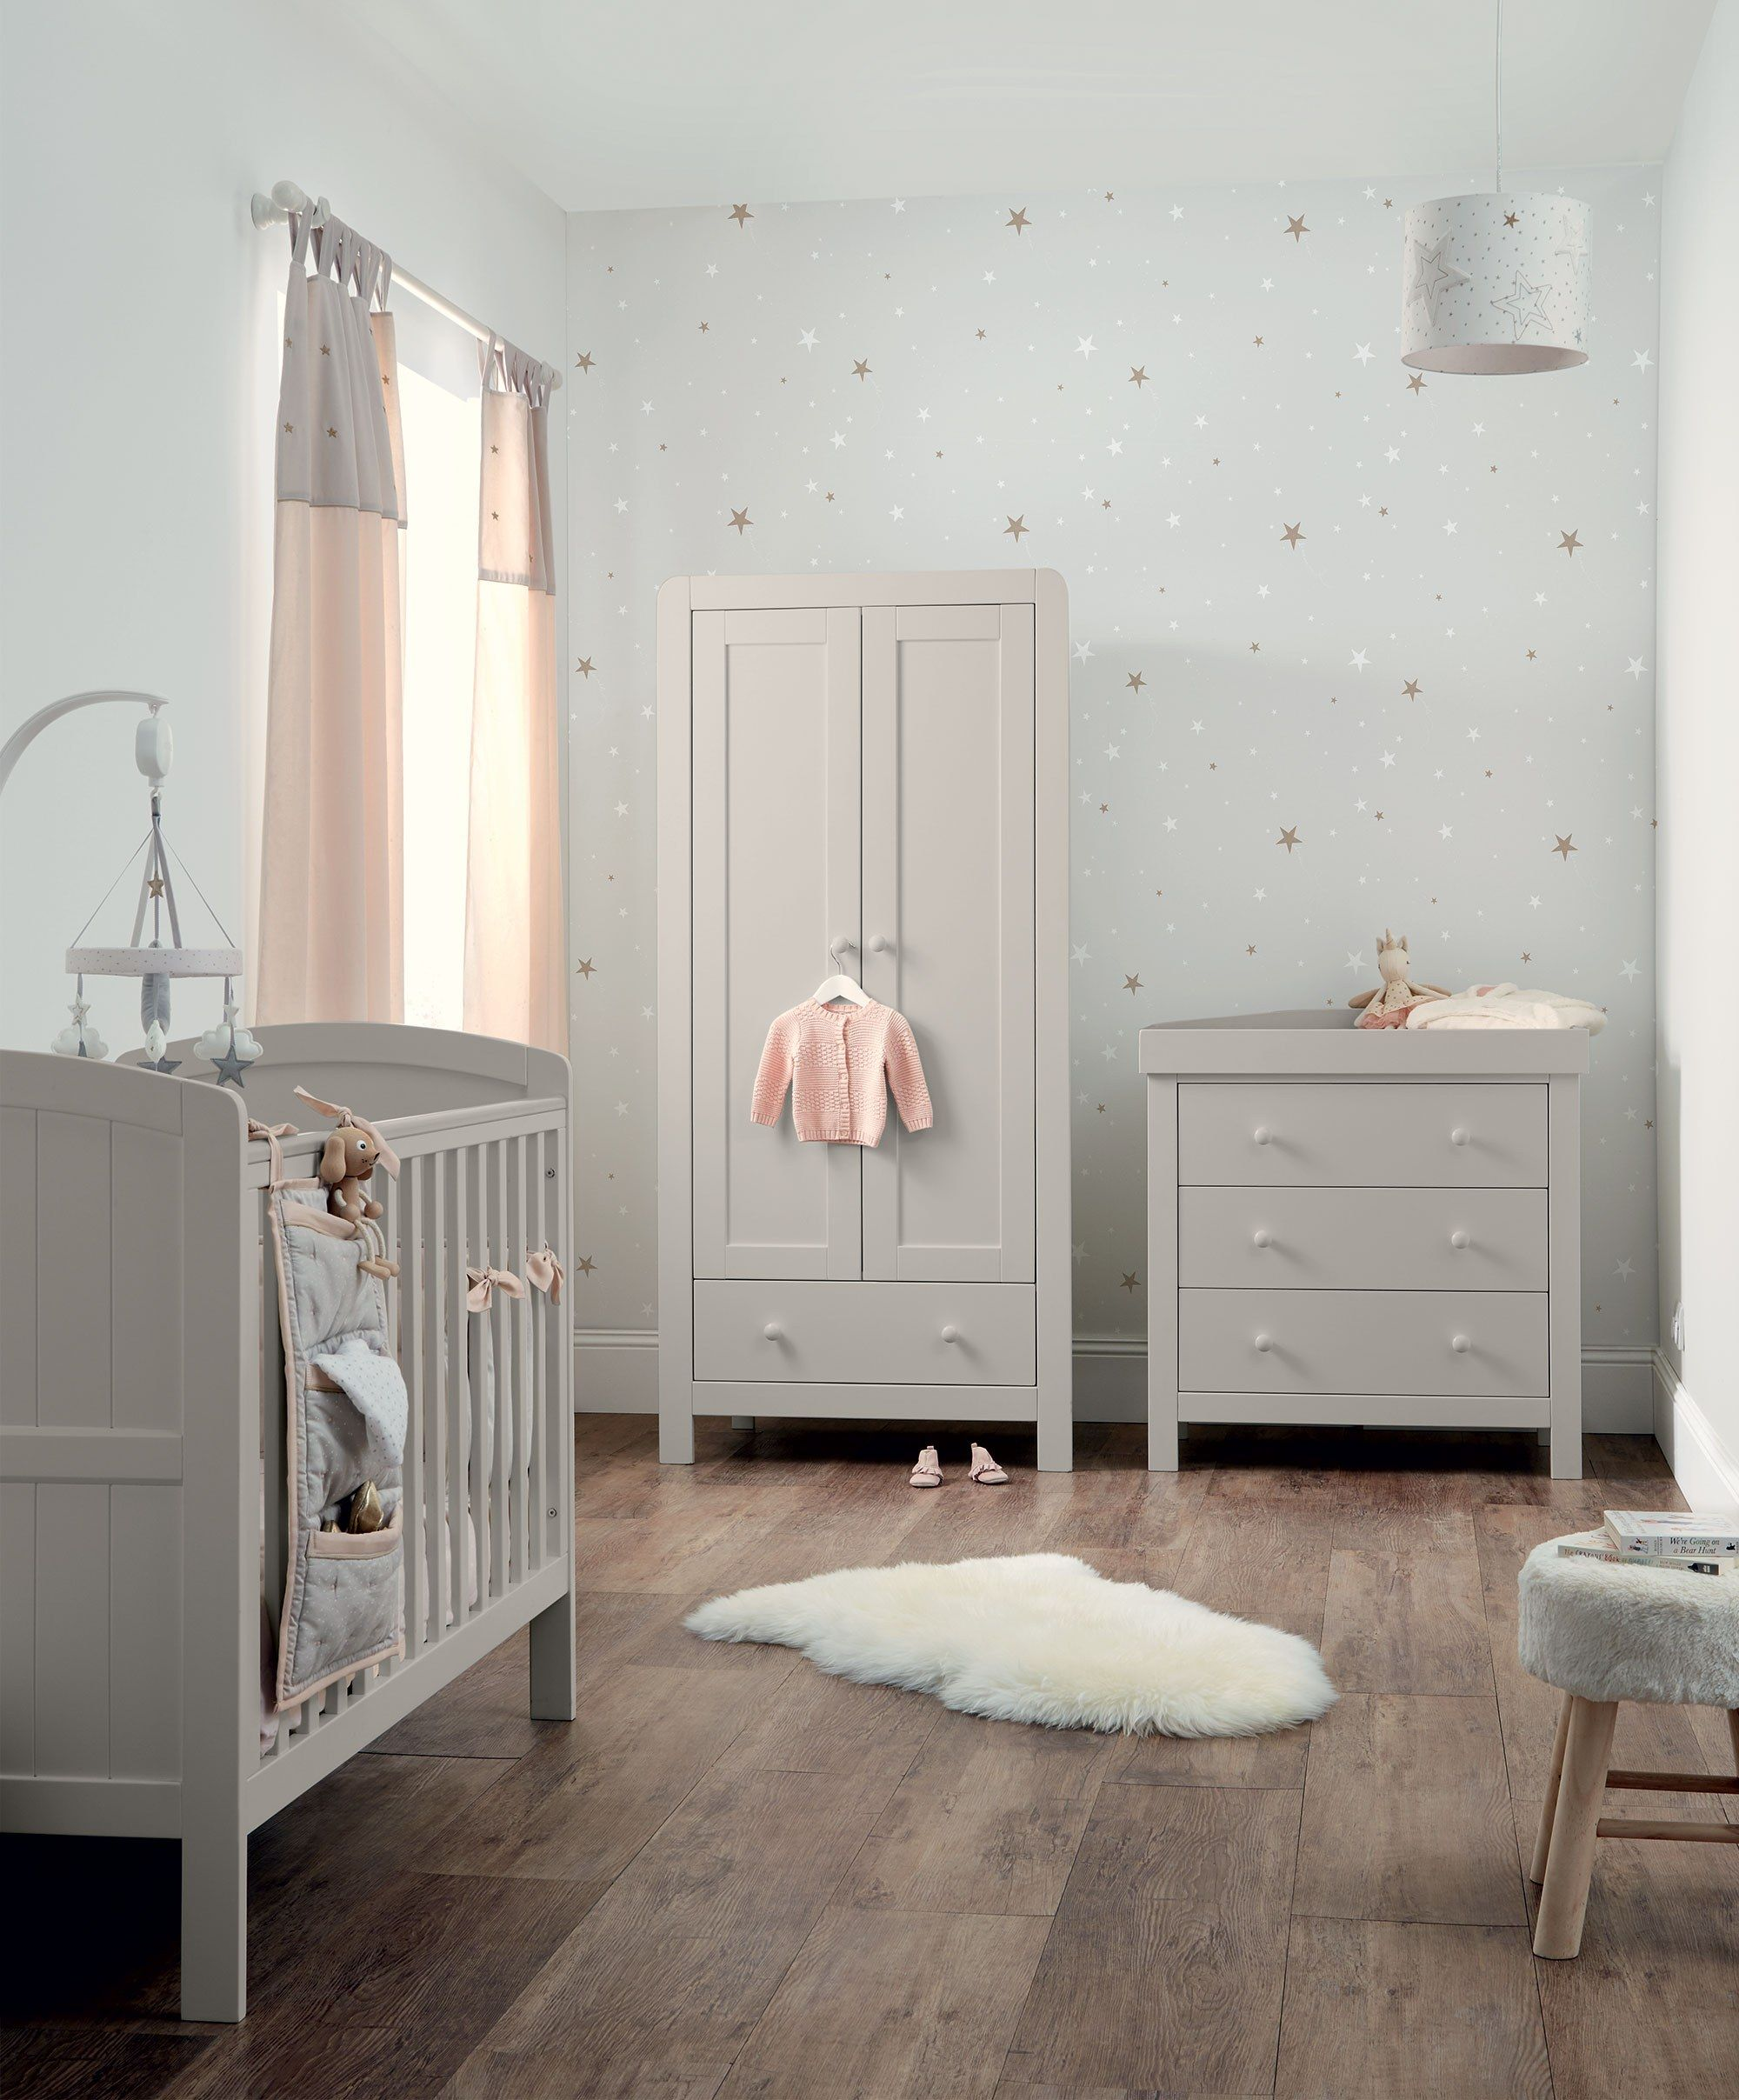 Dover 3 Piece Cot Range With Dresser And Wardrobe Grey Nursery